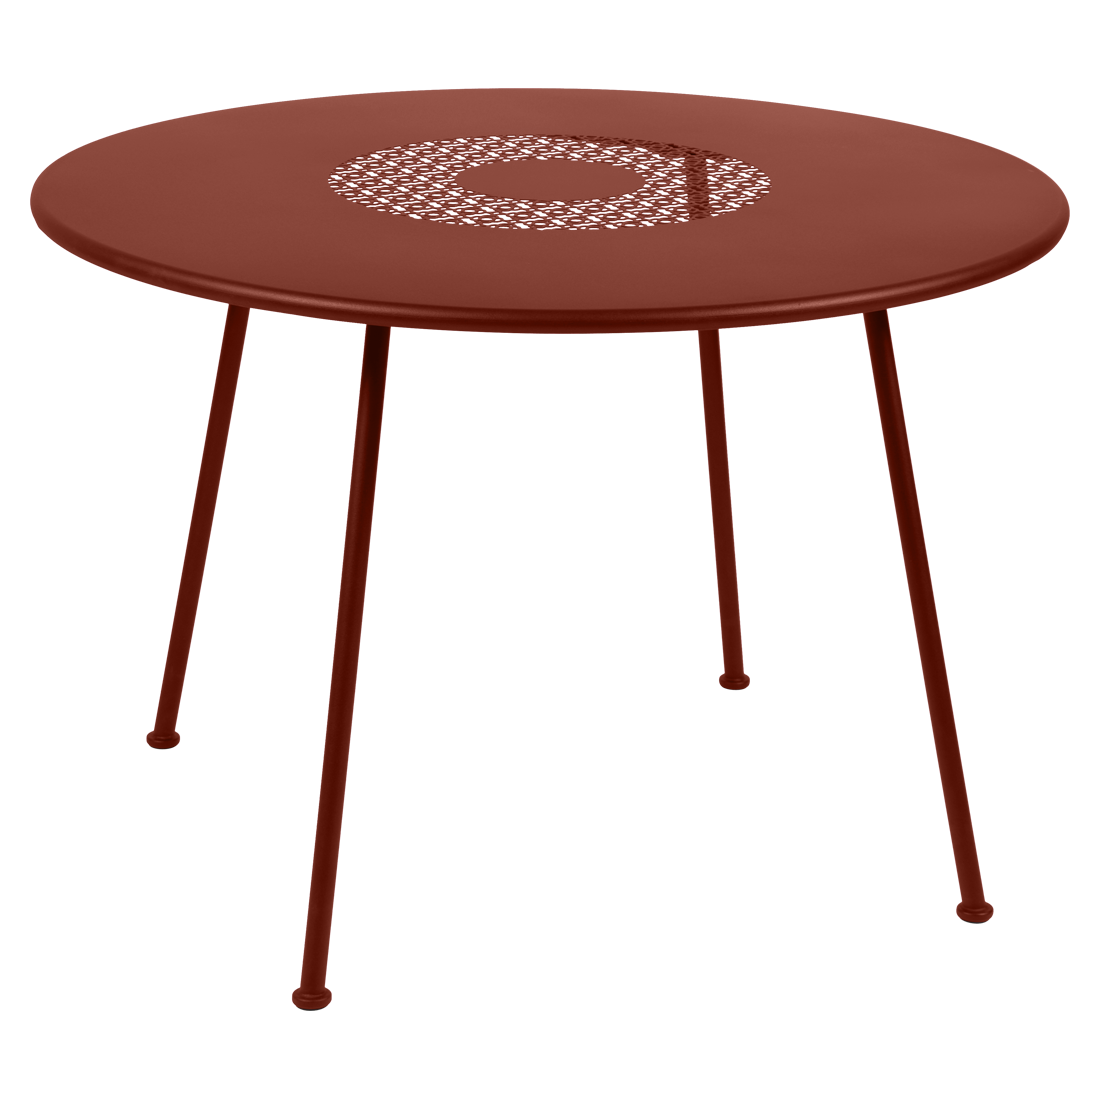 LORETTE / 5761 TABLE Ø 110 CM